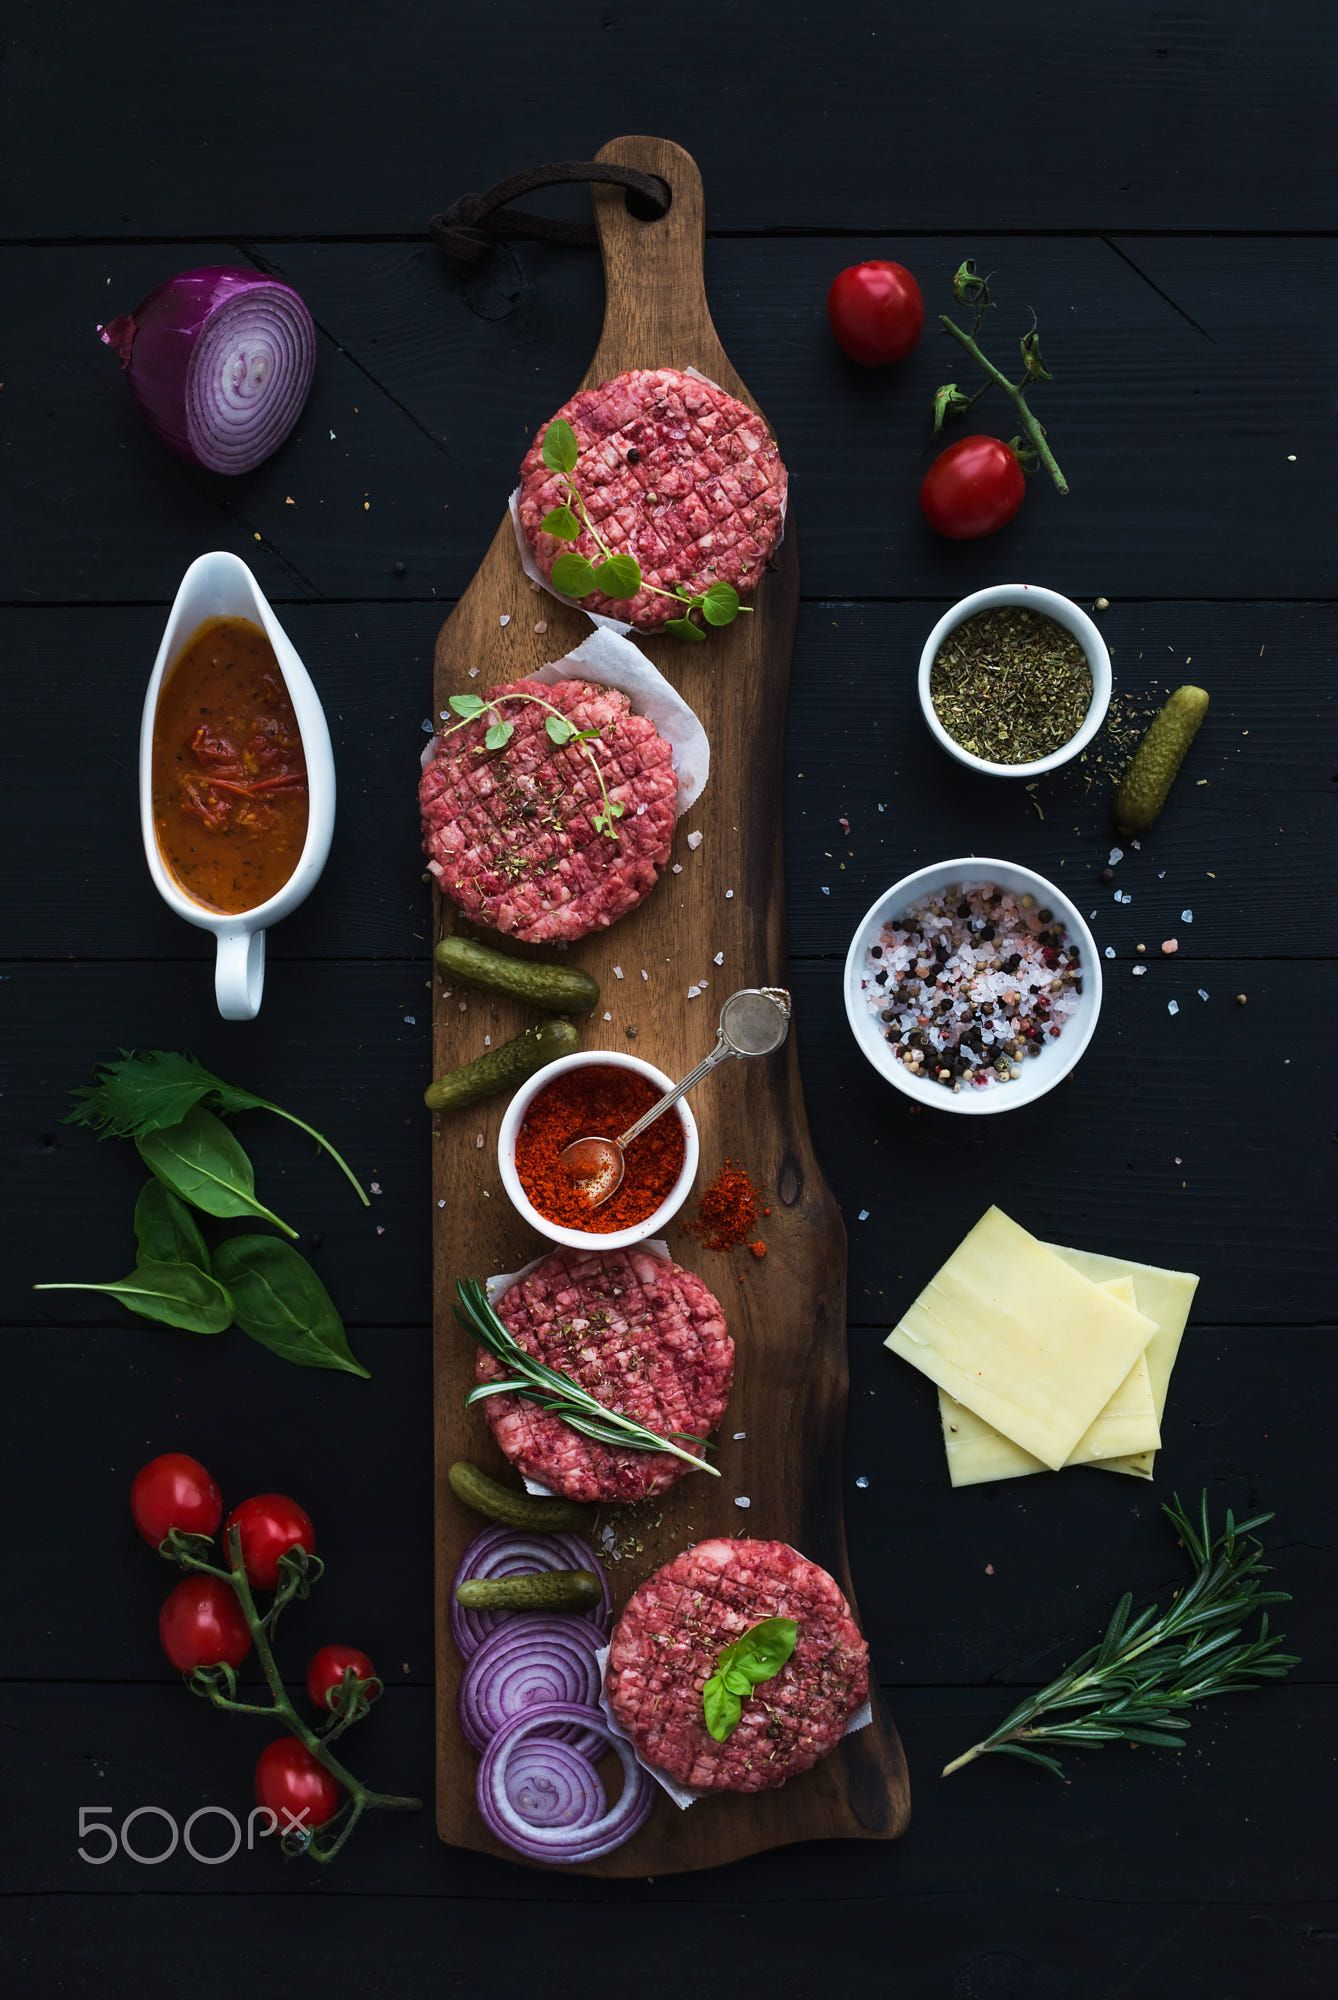 Ingredients For Cooking Burgers Raw Ground Beef Meat Cutlets On Wooden Chopping Board Red Onion Cherry Tomatoes Greens Beef Meat How To Cook Burgers Food